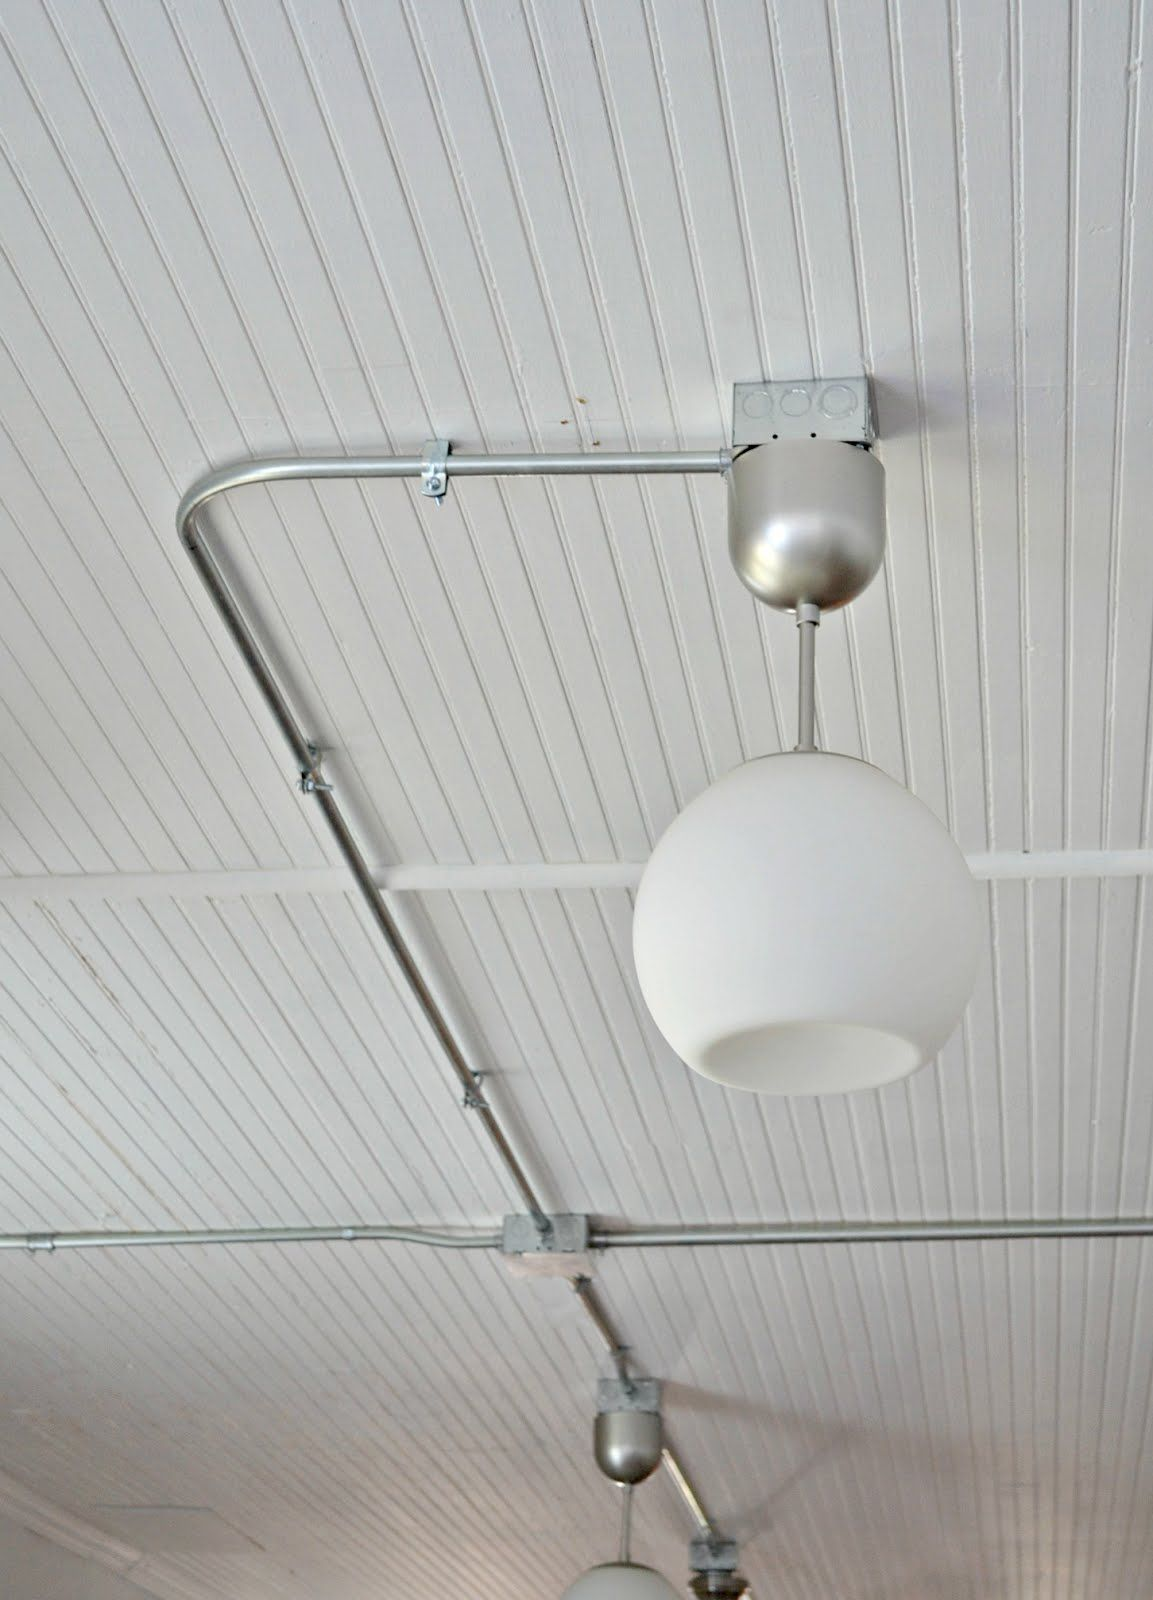 hight resolution of thinking of the sun porch lighting not the fixture but the visible wiring through visible tube